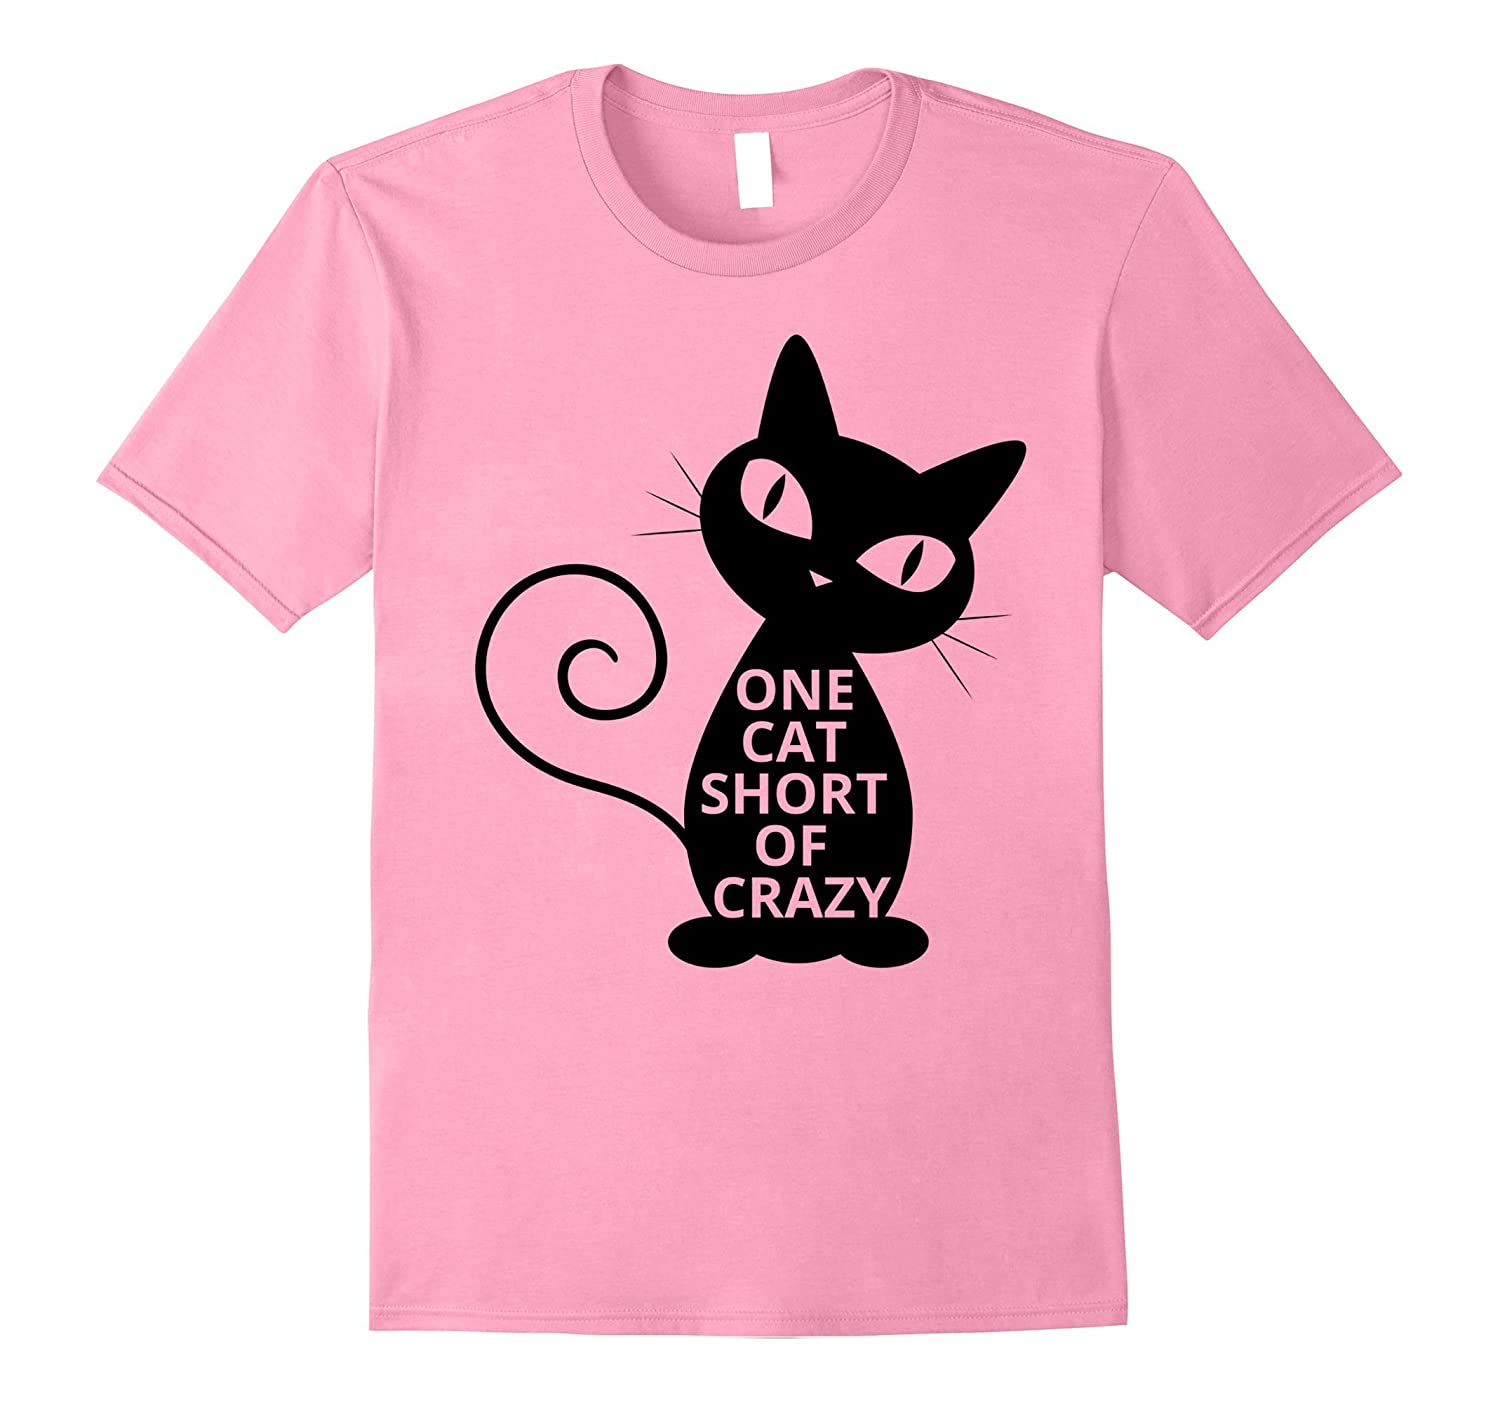 Best Cat Ever T-Shirts - One Cat Short Of Crazy Lady Eyes-Vaci